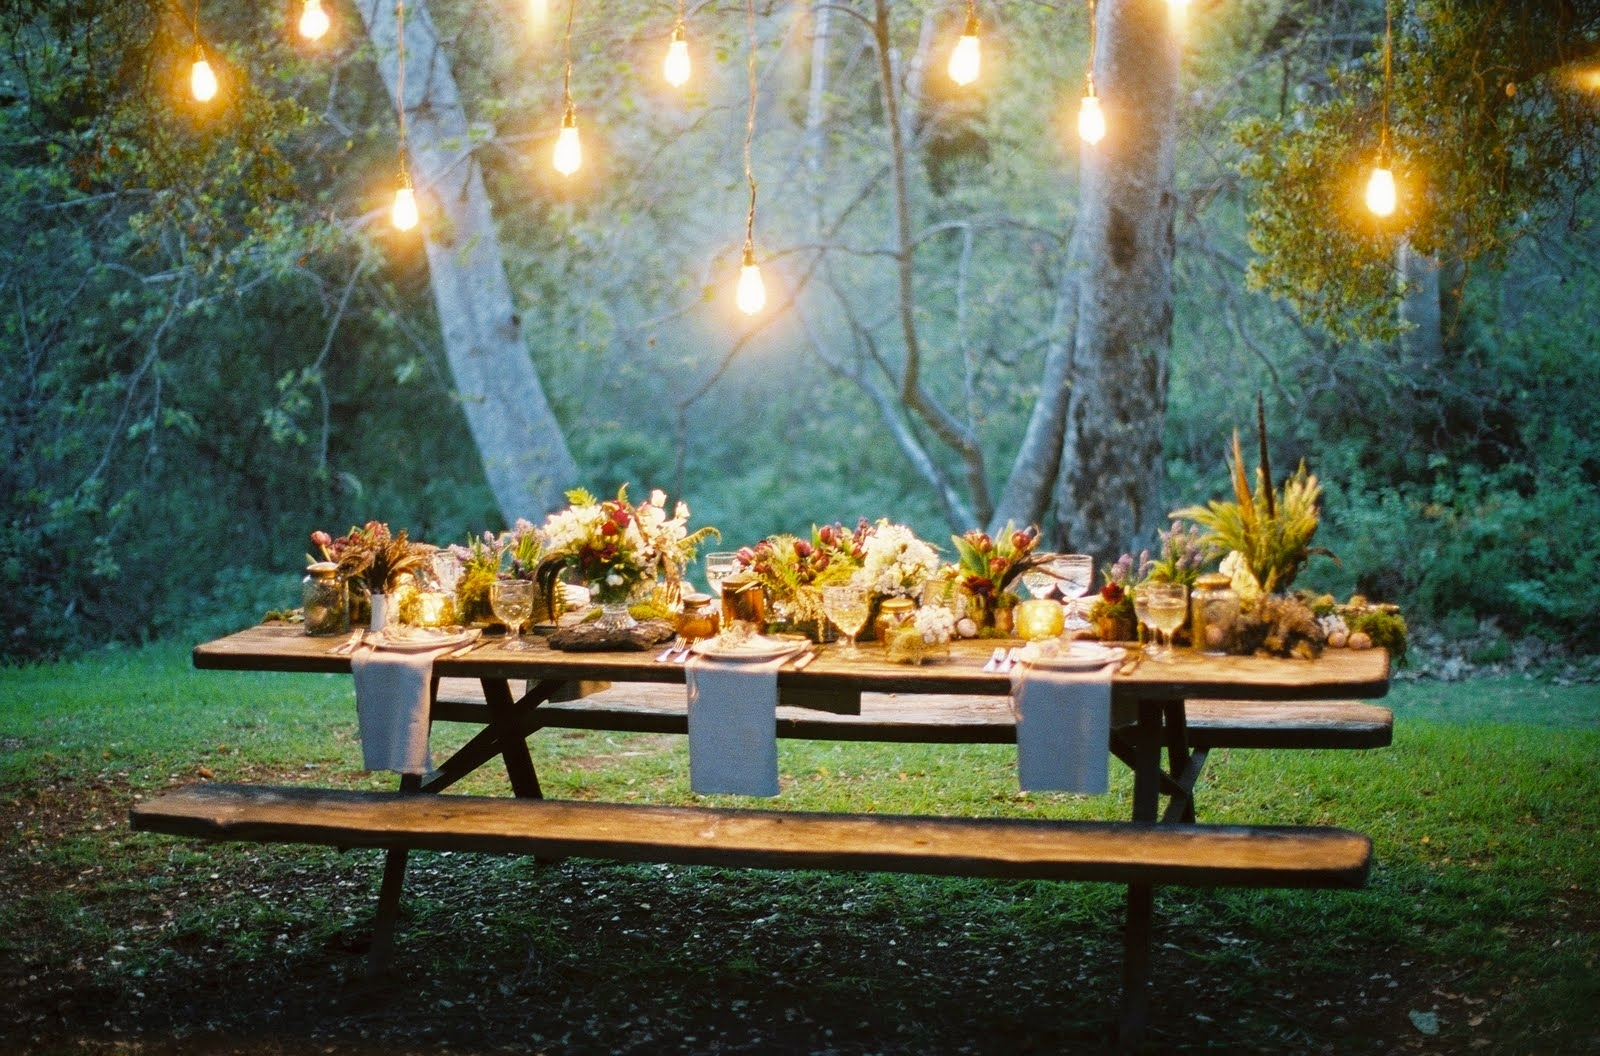 17 Best Images About Garden Party On Pinterest   Outdoor Parties for Garden Light Ideas For A Party